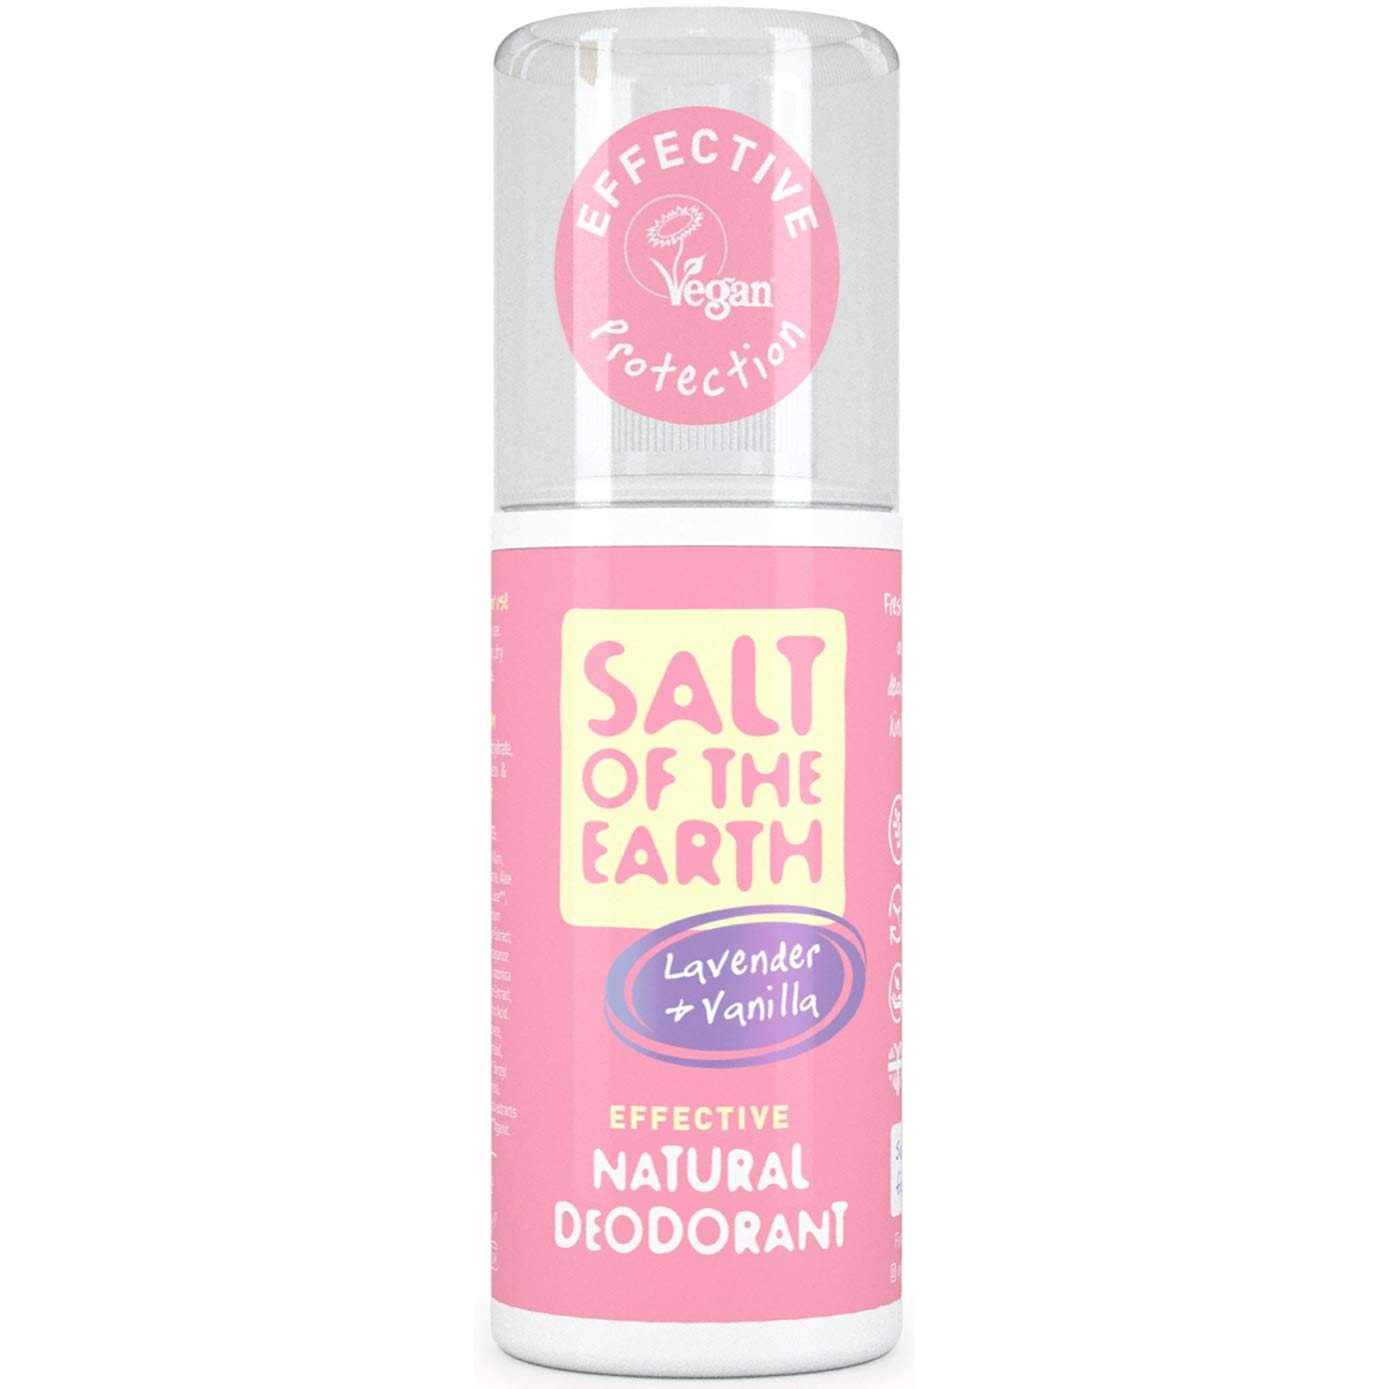 Natural Deodorant Spray by Salt of the Earth, Lavender & Vanilla – 100% Aluminium Free Deodorant, Vegan, Long Lasting Protection, Not Tested on Animals, Paraben Free, Made in the UK – 100ml